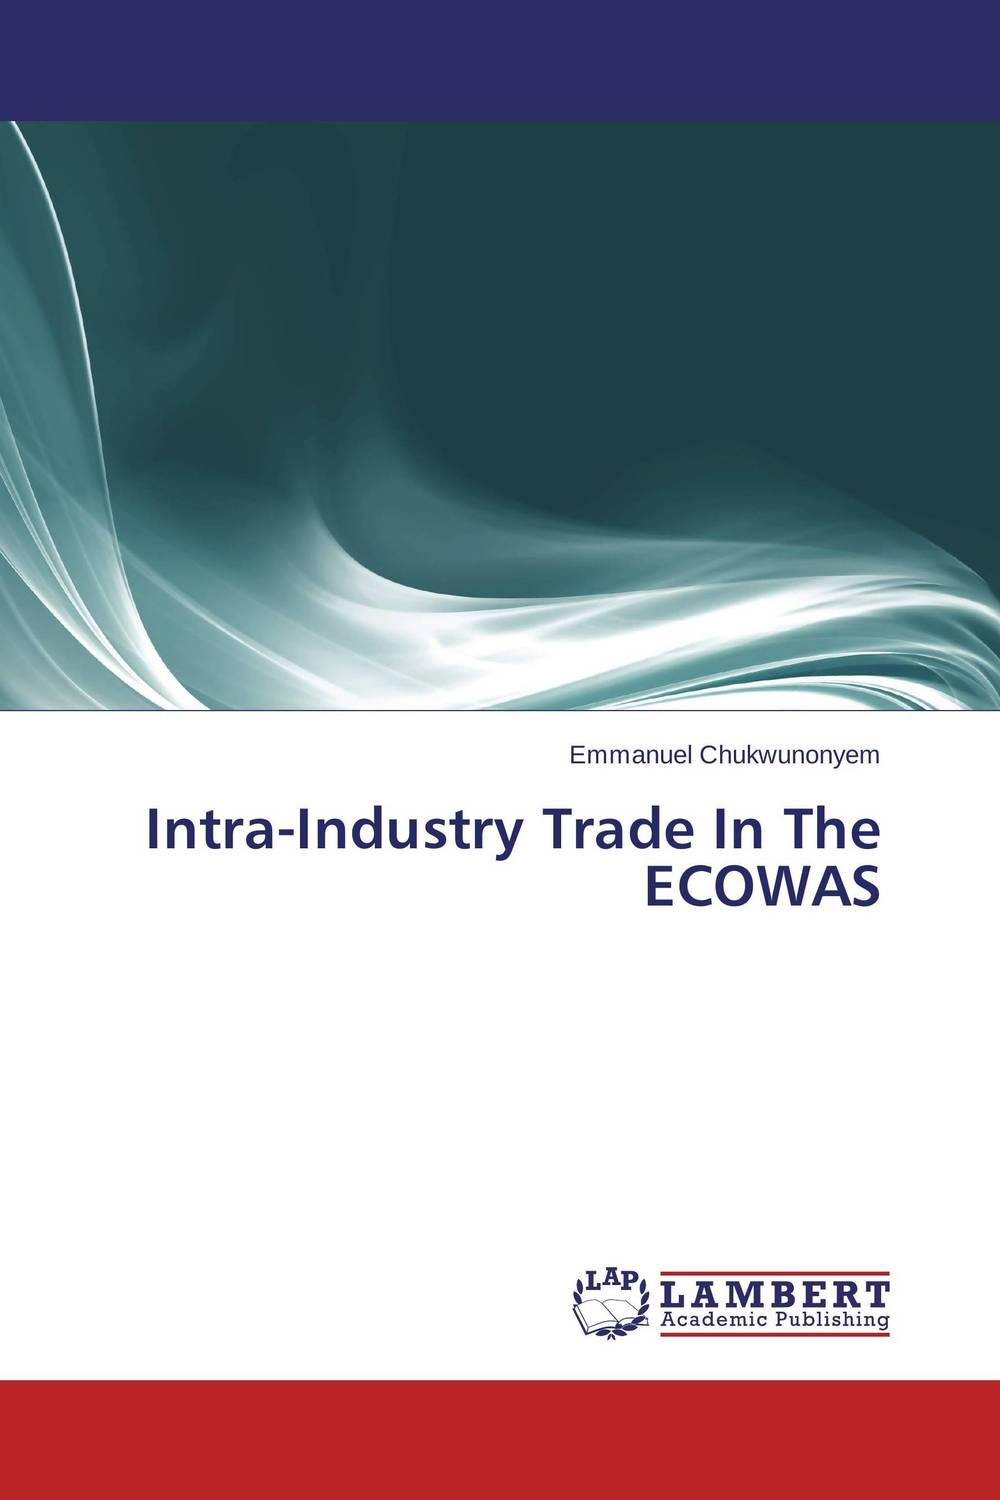 Intra-Industry Trade In The ECOWAS arvinder pal singh batra jeewandeep kaur and anil kumar pandey factors associated with breast cancer in amritsar region